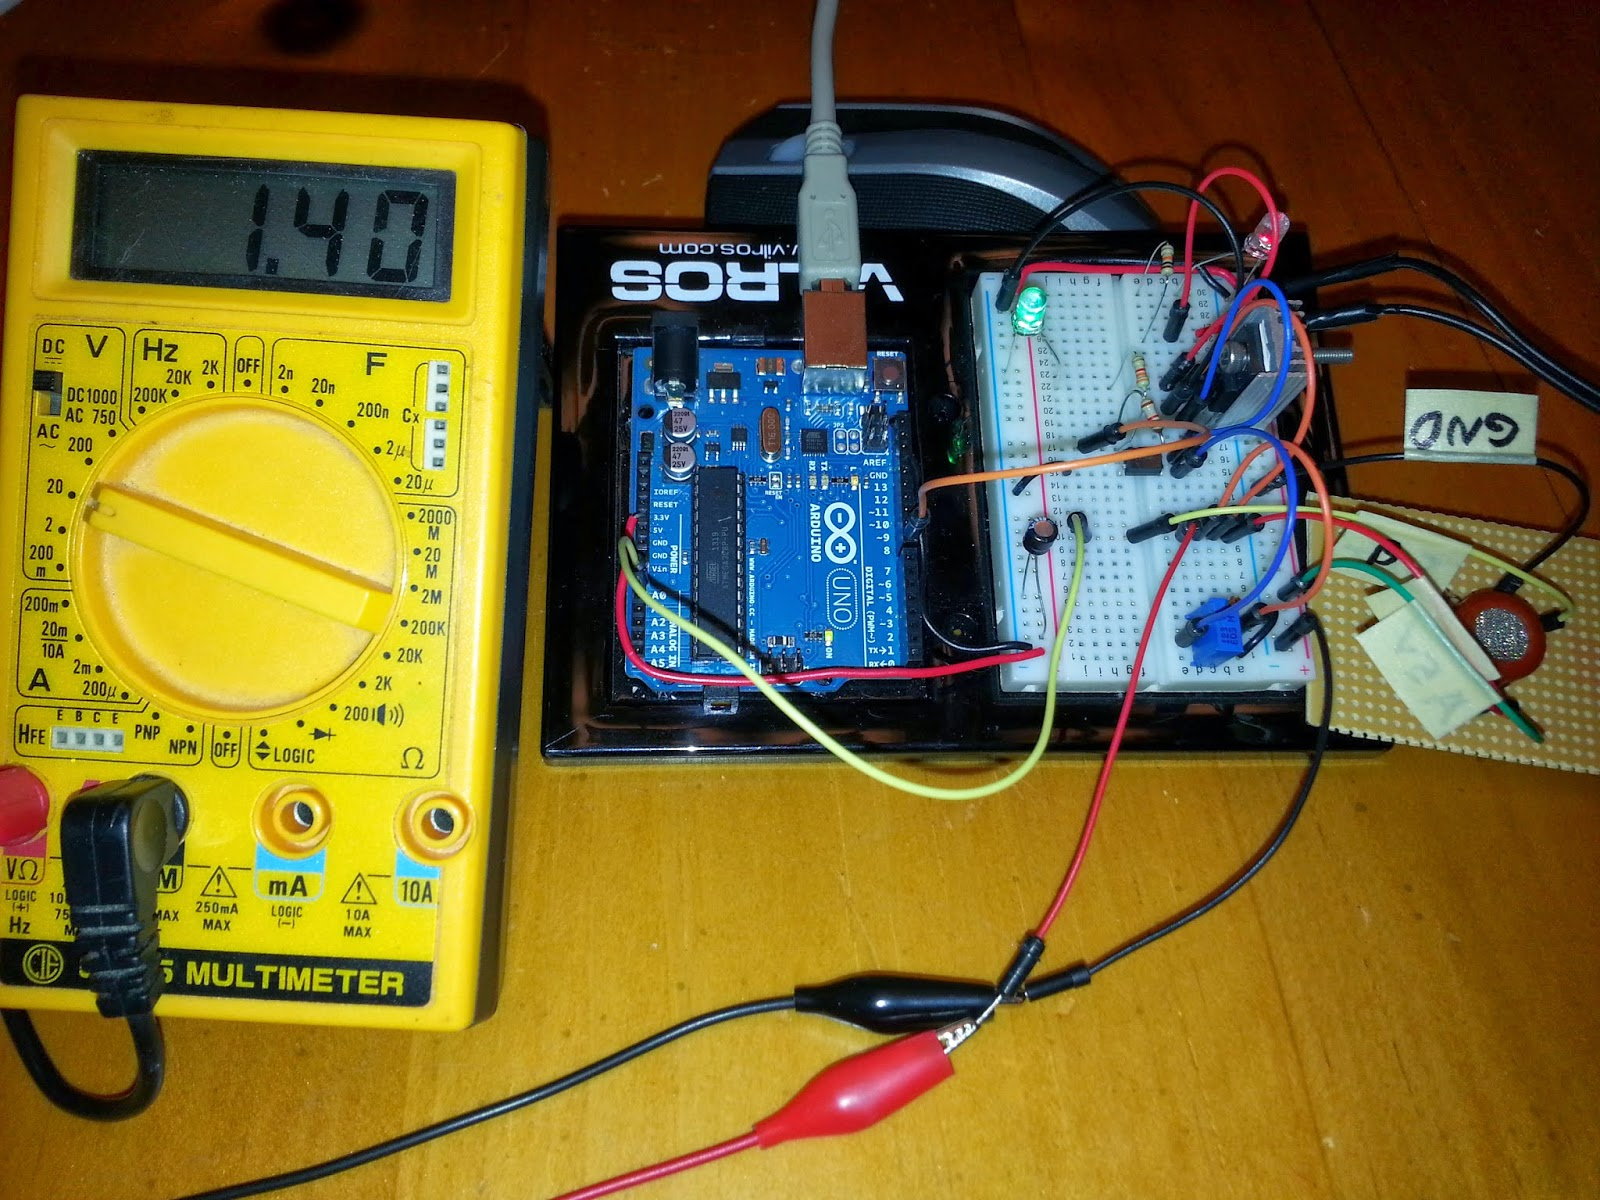 Internet Of Things Co Carbon Monoxide Gas Sensor Using The Use Relays To Control Highvoltage Circuits With An Arduino